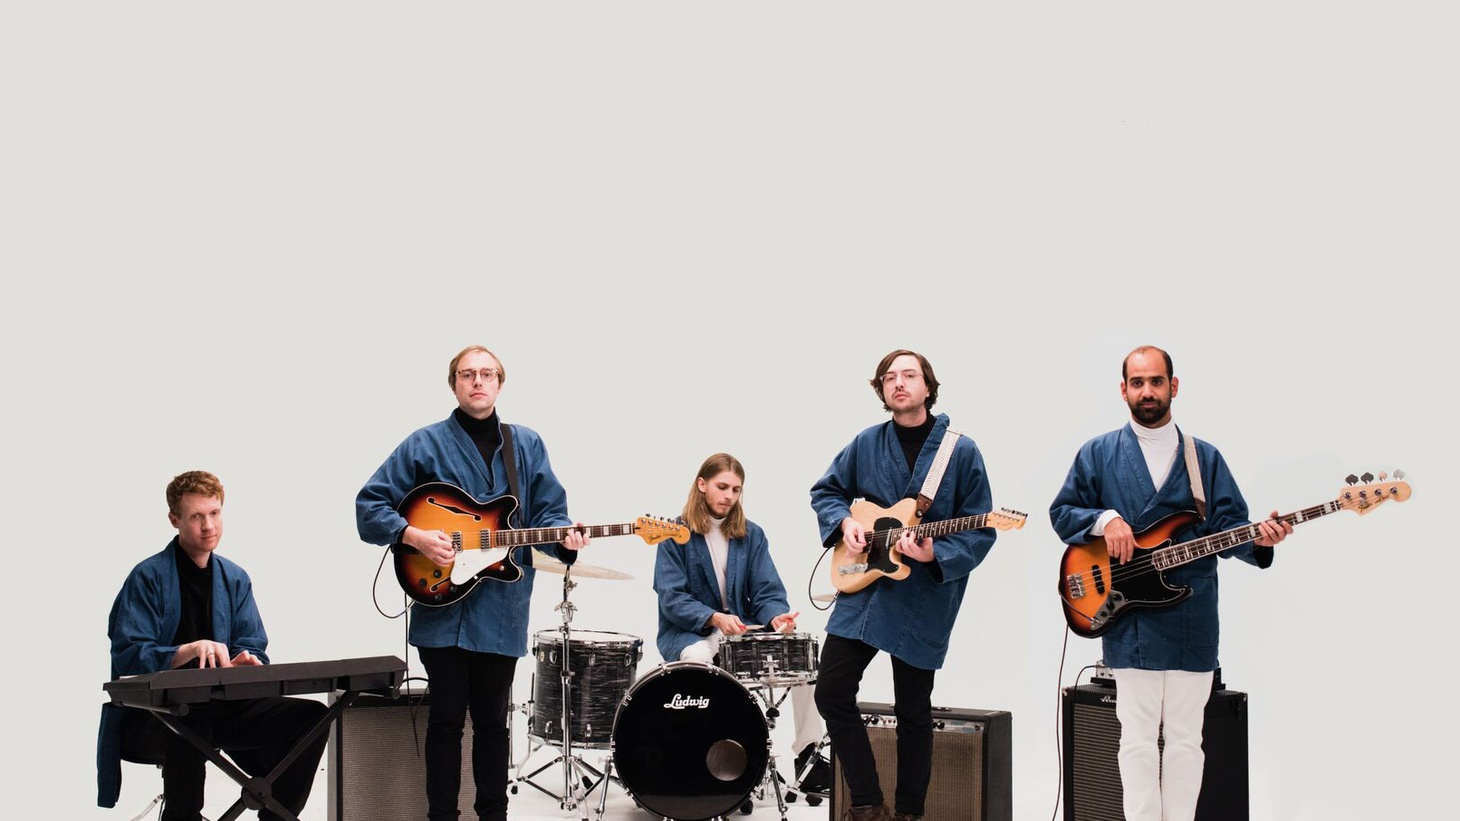 Fans of Real Estate rejoice as the boys return with a new single that highlights their classic laid-back charm.